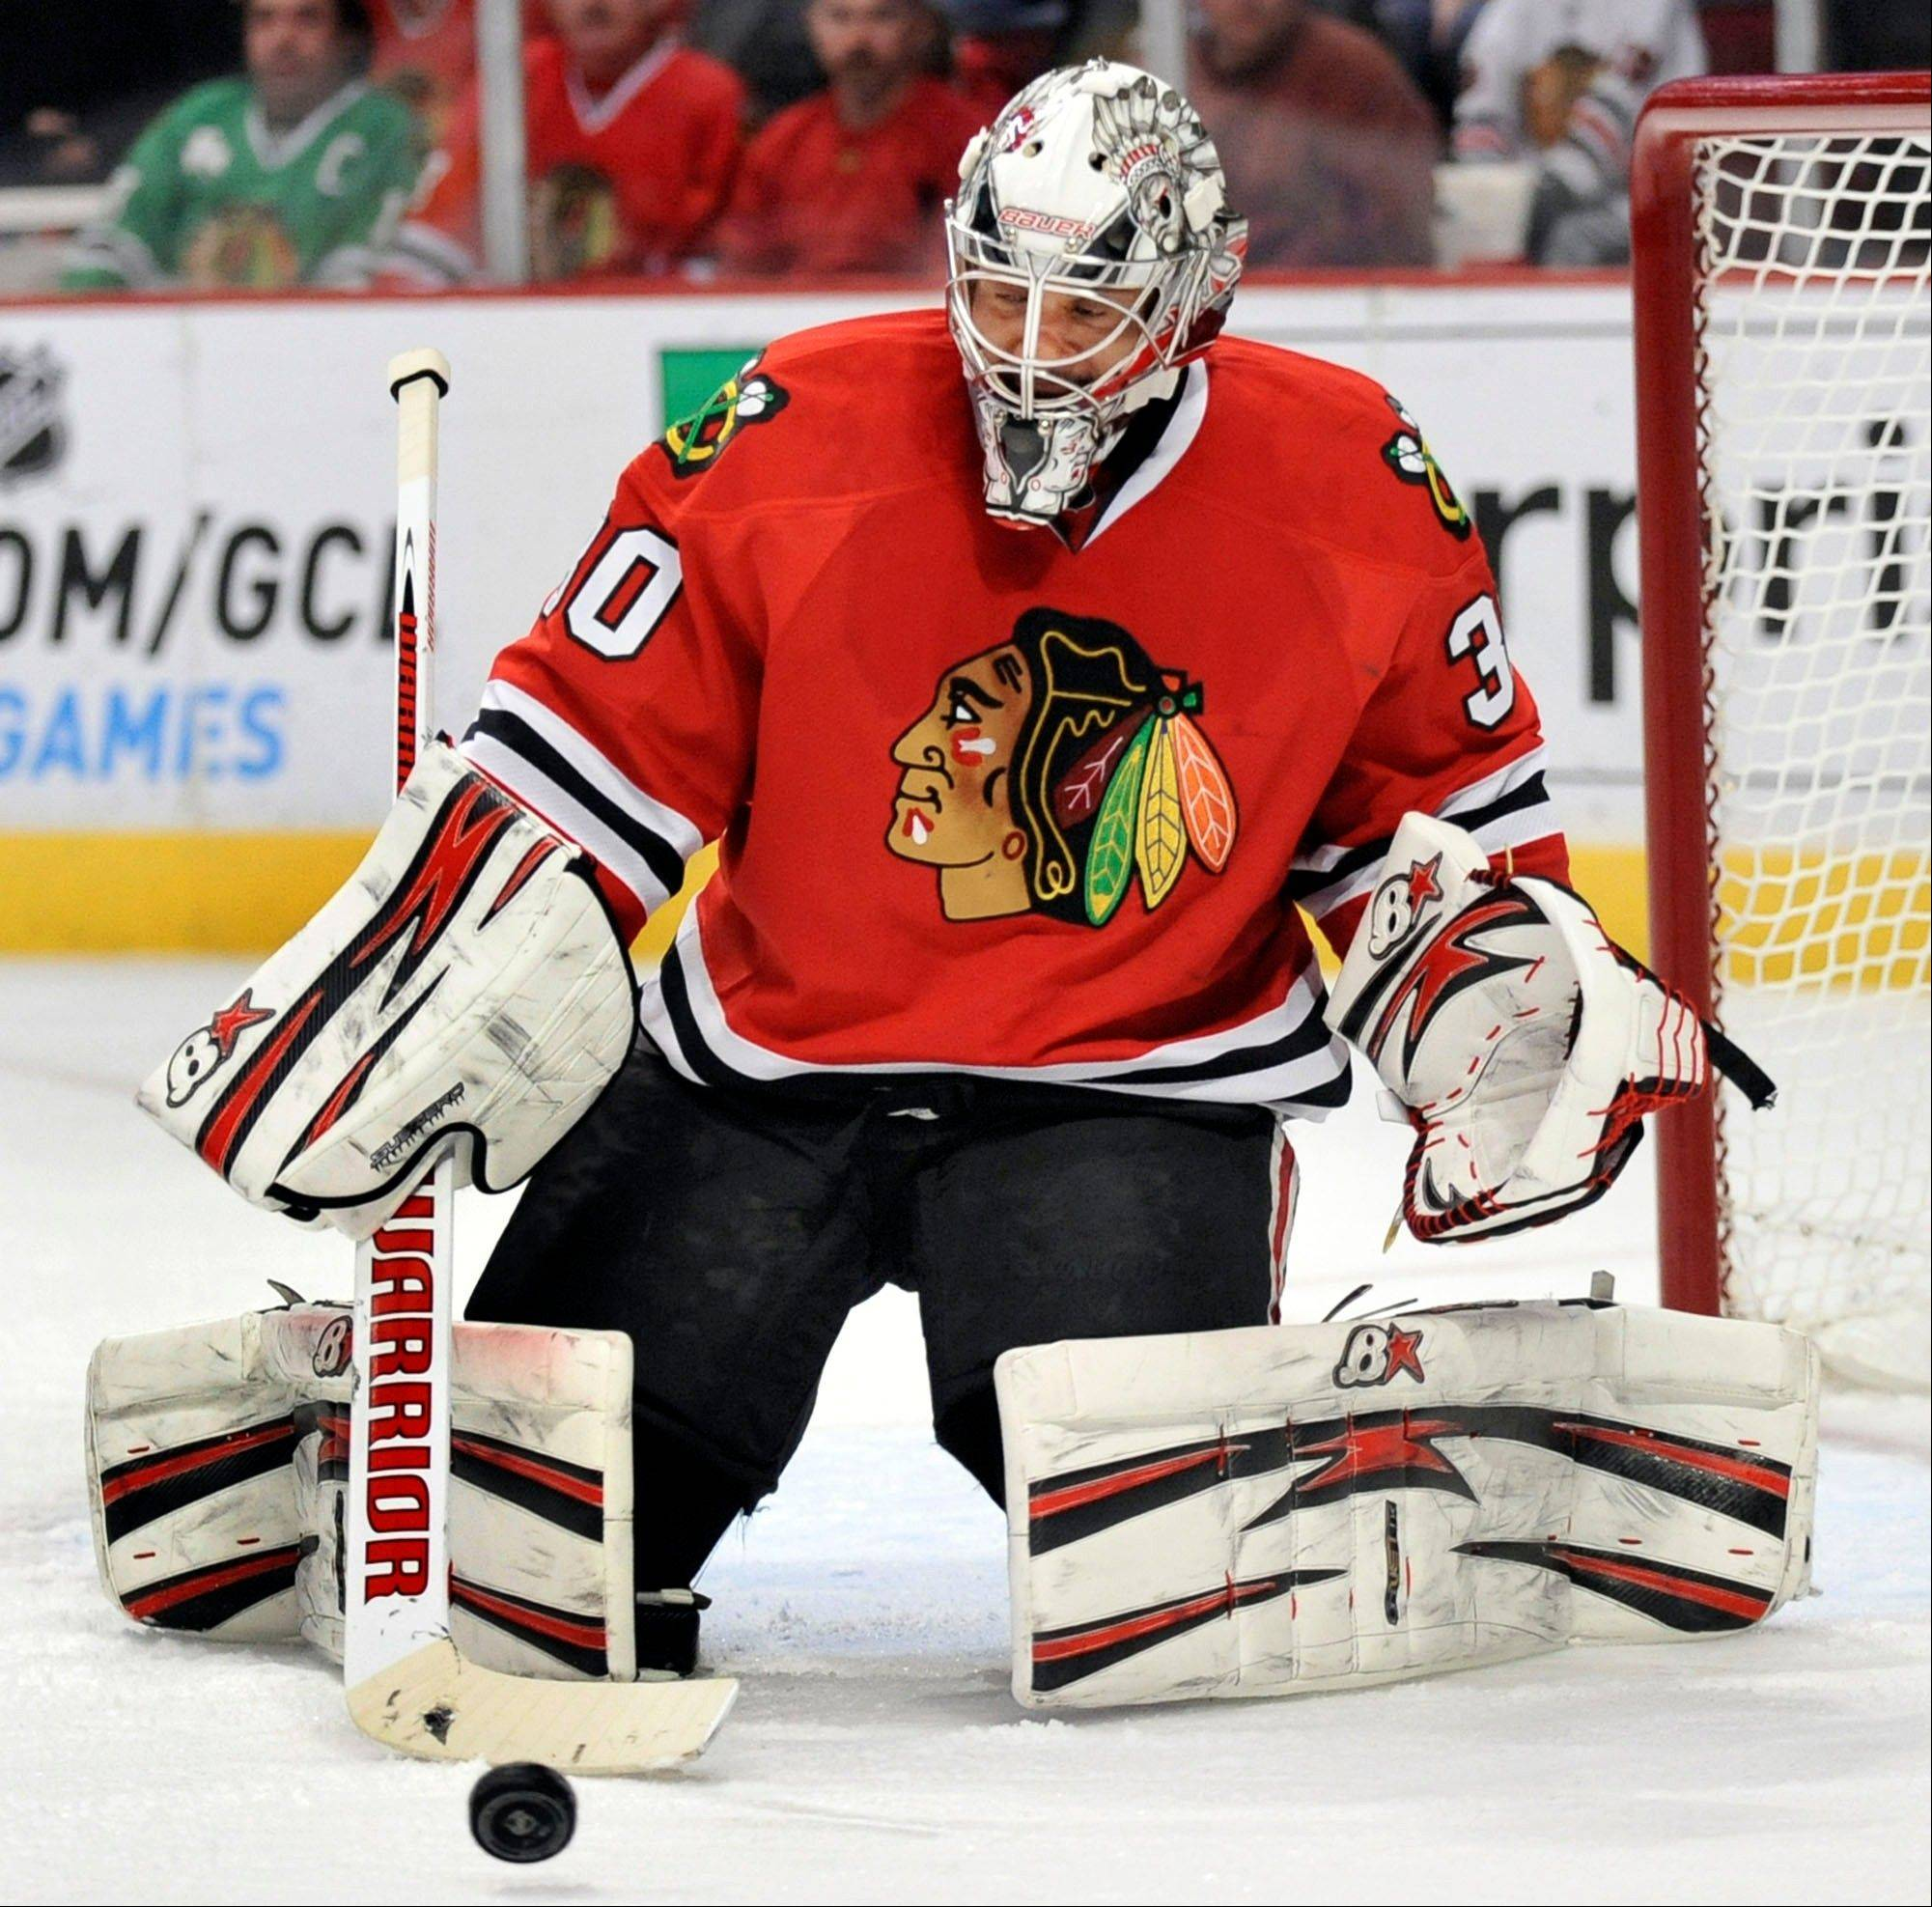 Goalie Ray Emery has given the Blackhawks the best goalie tandem in the NHL. Head coach Joel Quenneville has nine more regular season games to decide which goalie will open the Stanley Cup playoffs in net.